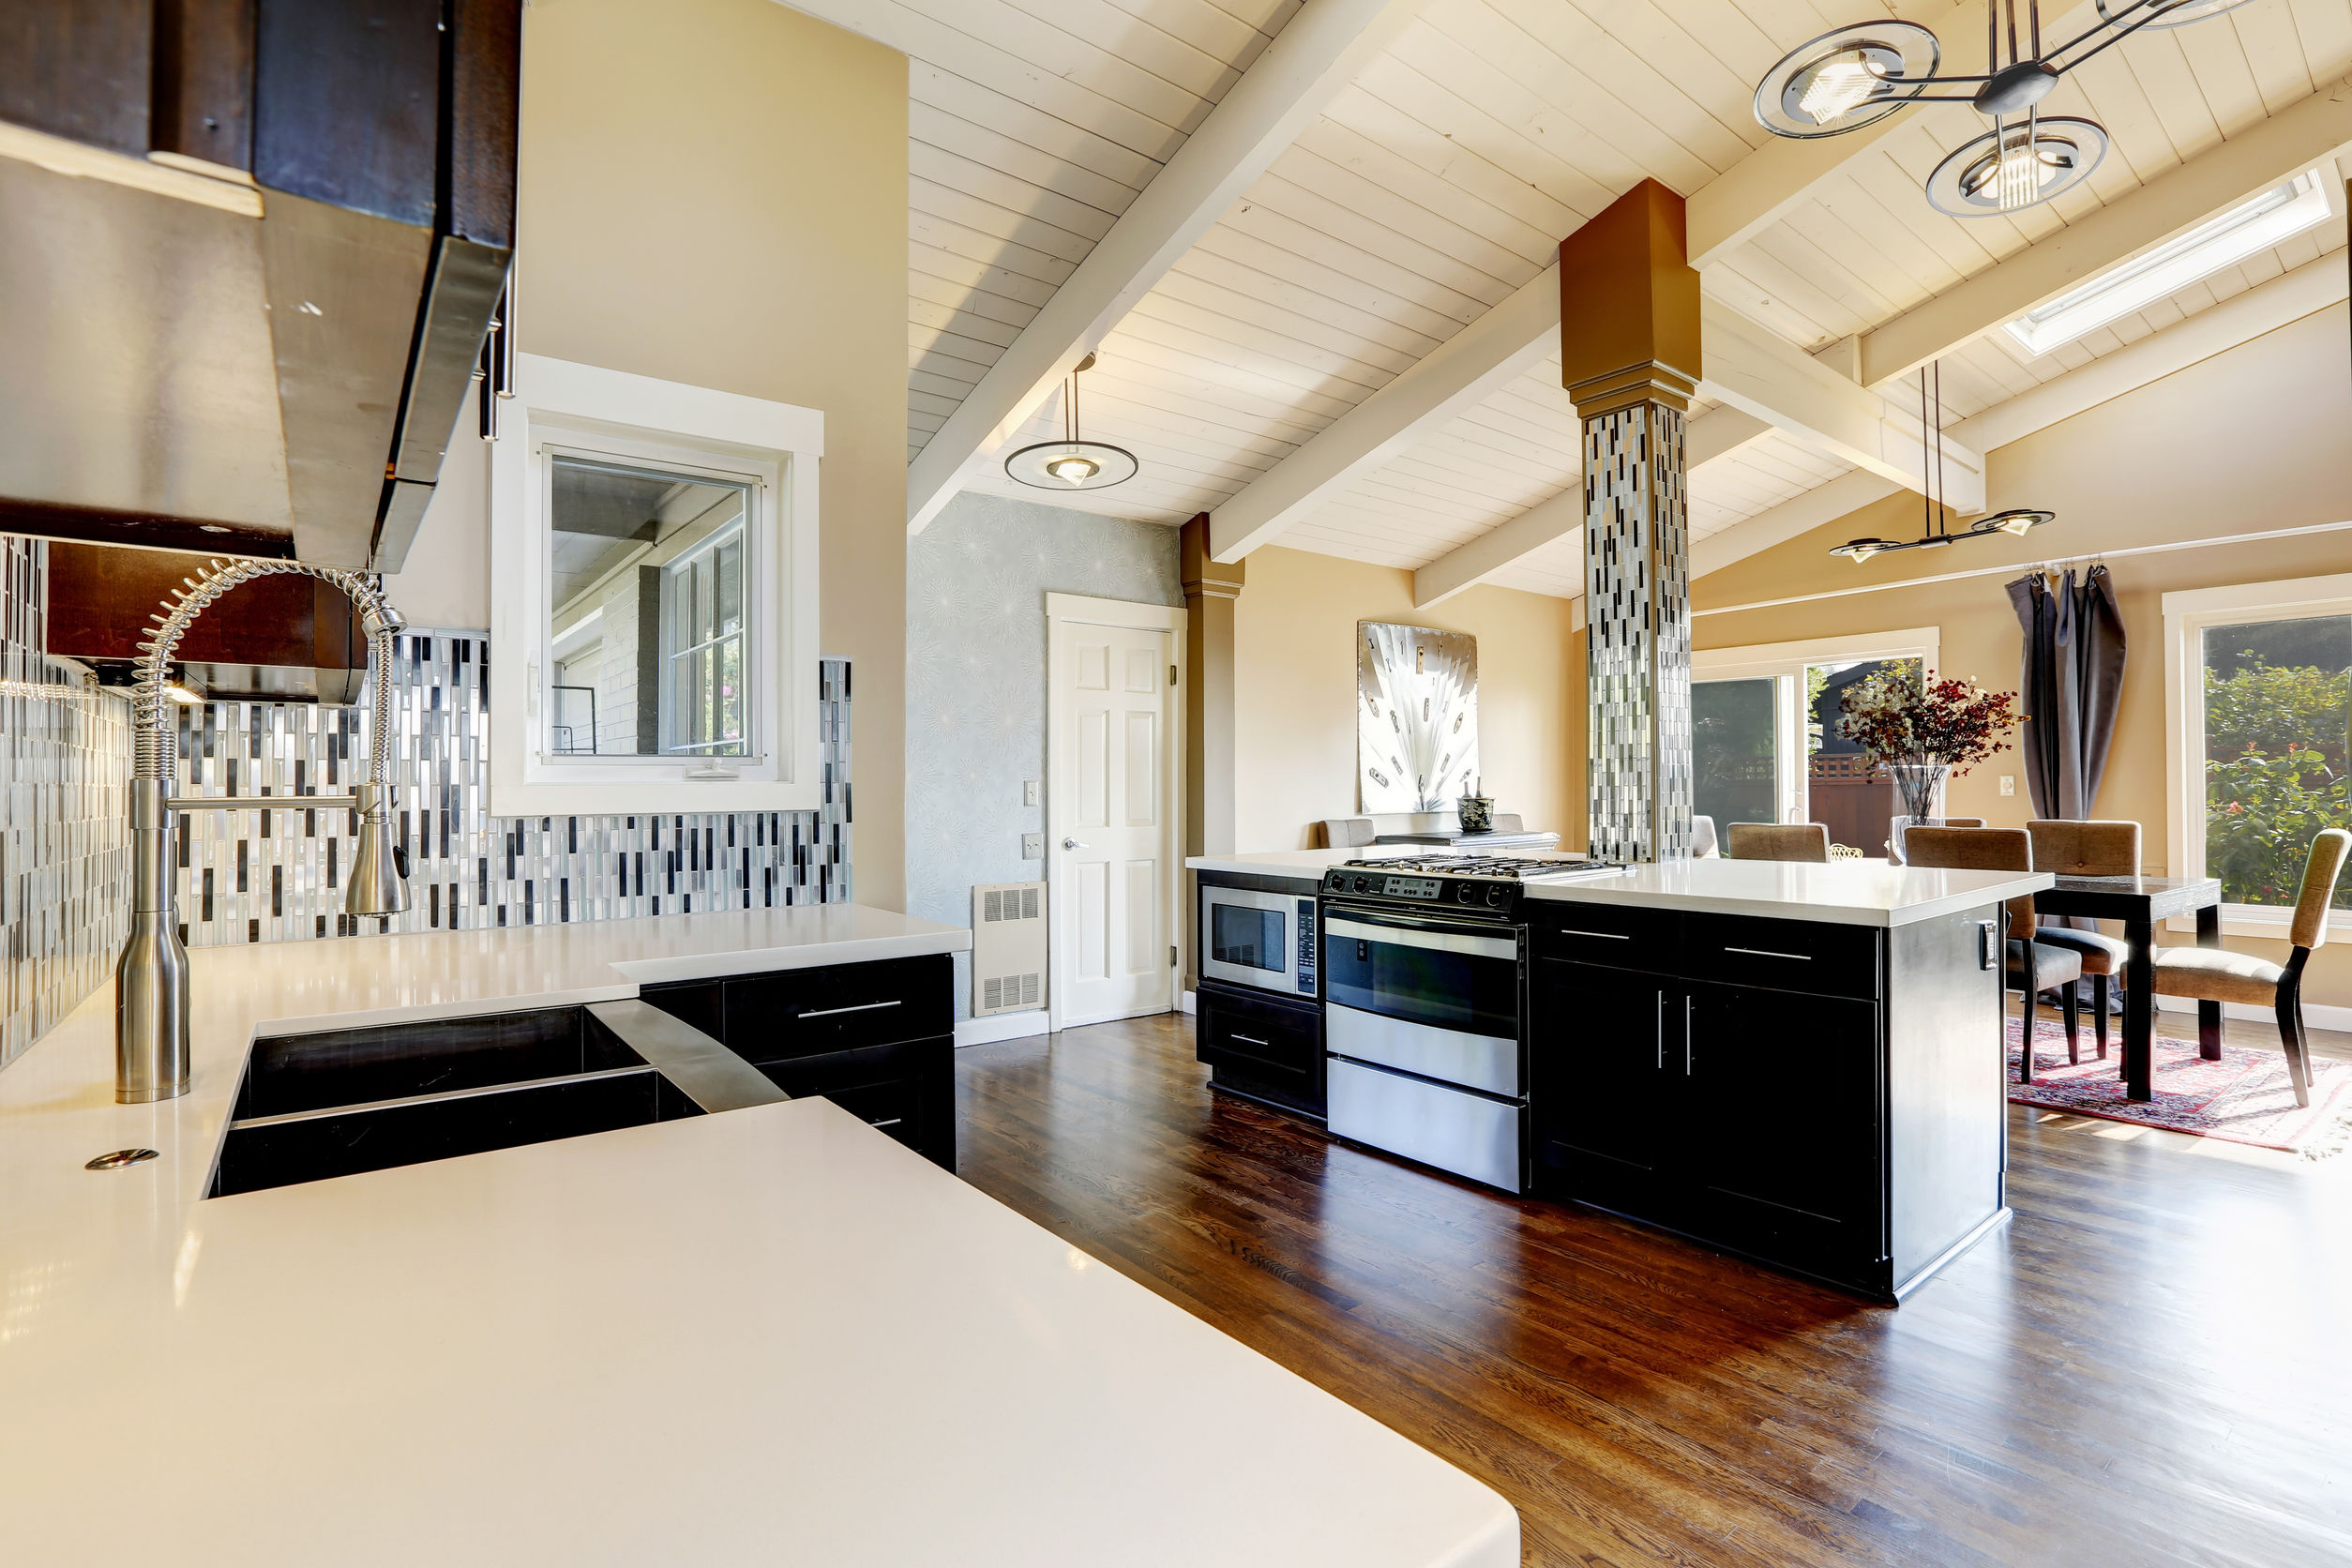 custom kitchen cabinets, kitchen cabinets orlando